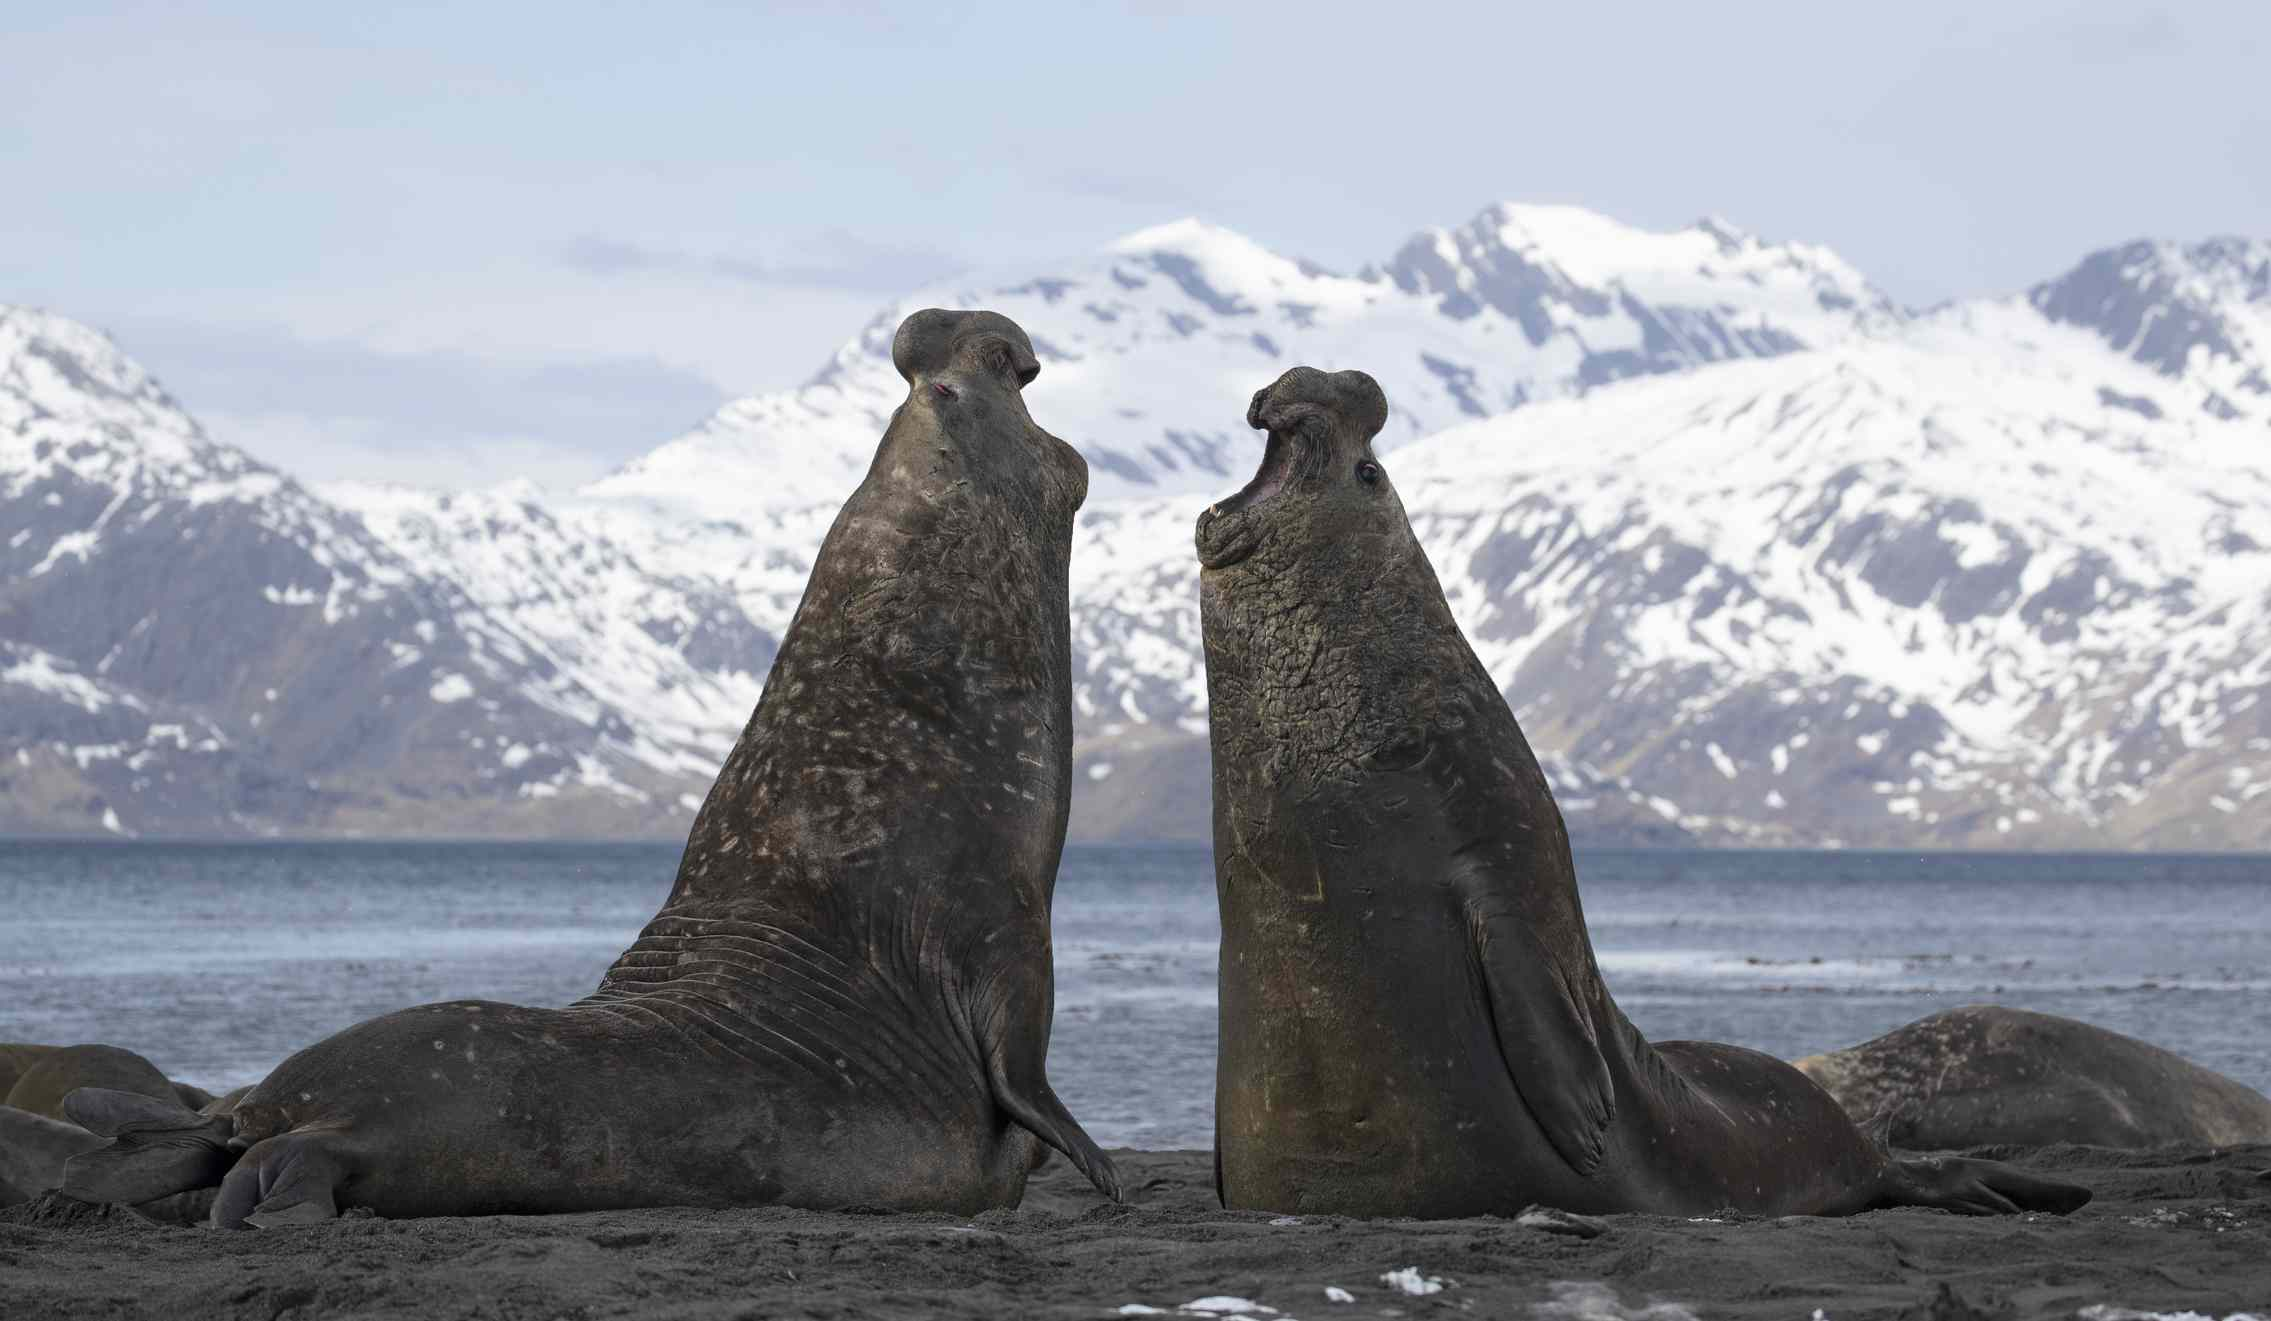 Two elephant seals fighting on shore in Antarctica.